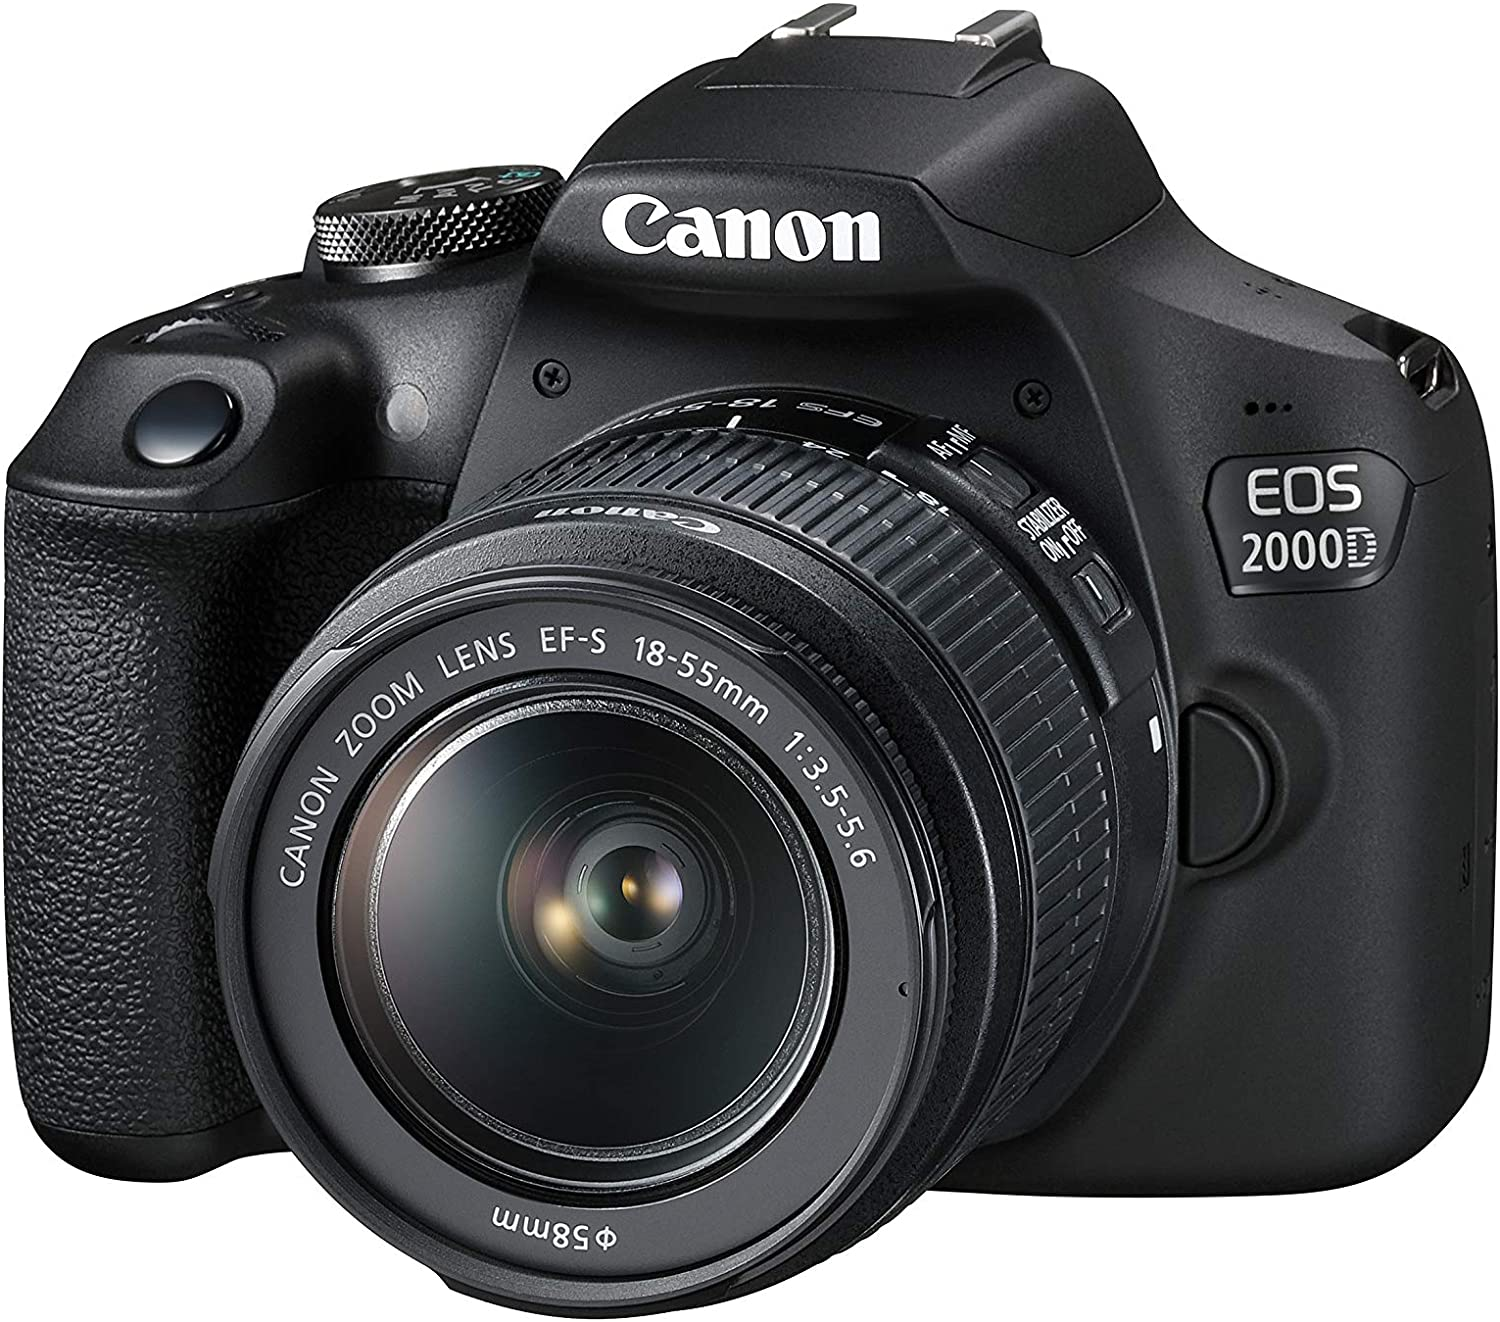 Canon EOS 2000D EF-S 18-55mm III Lens 2728C002 BLACK - 2071MALL